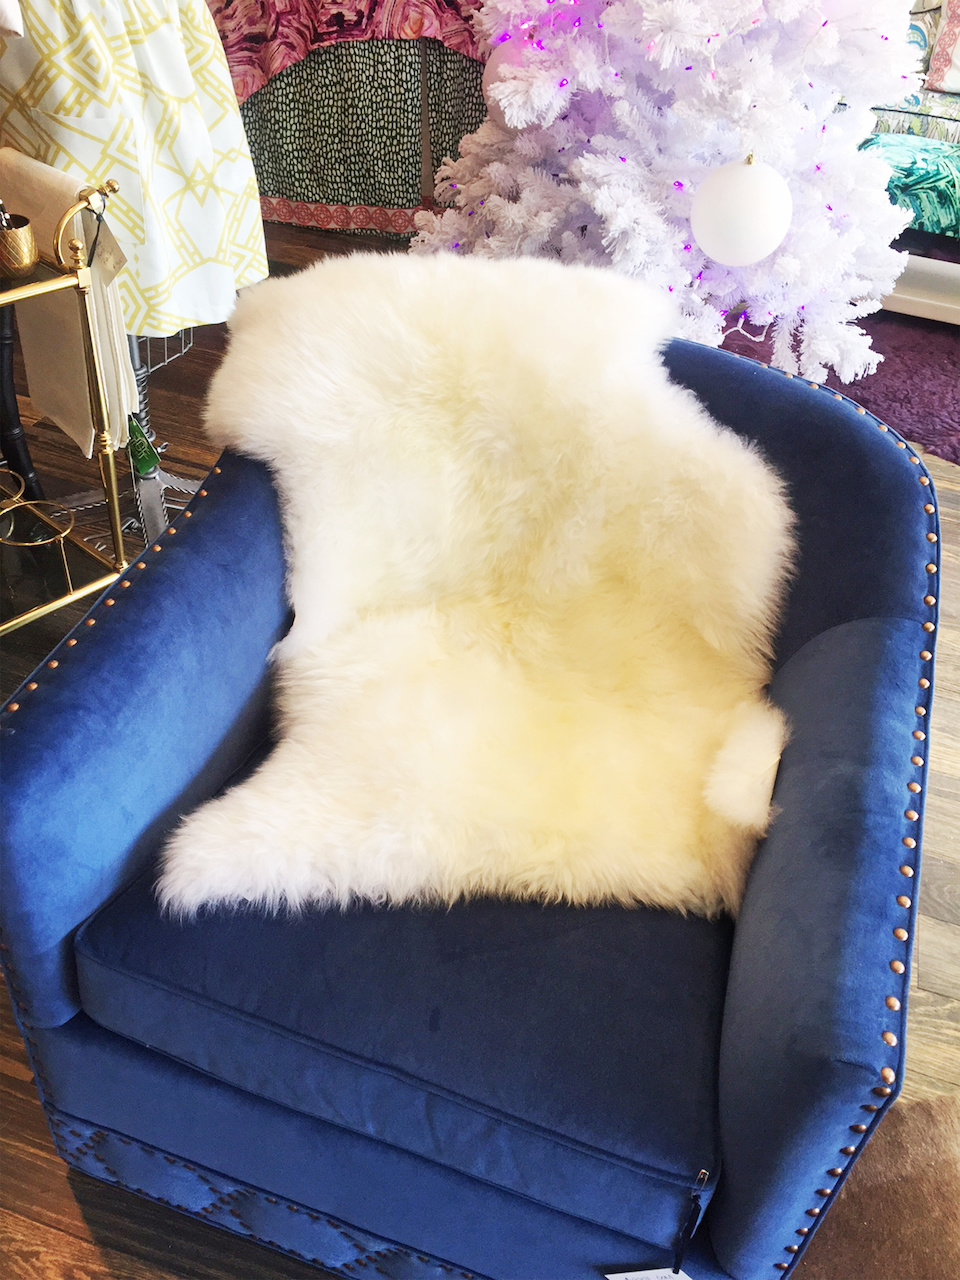 Australian sheepskin throw, $150, at Cotton + Quill